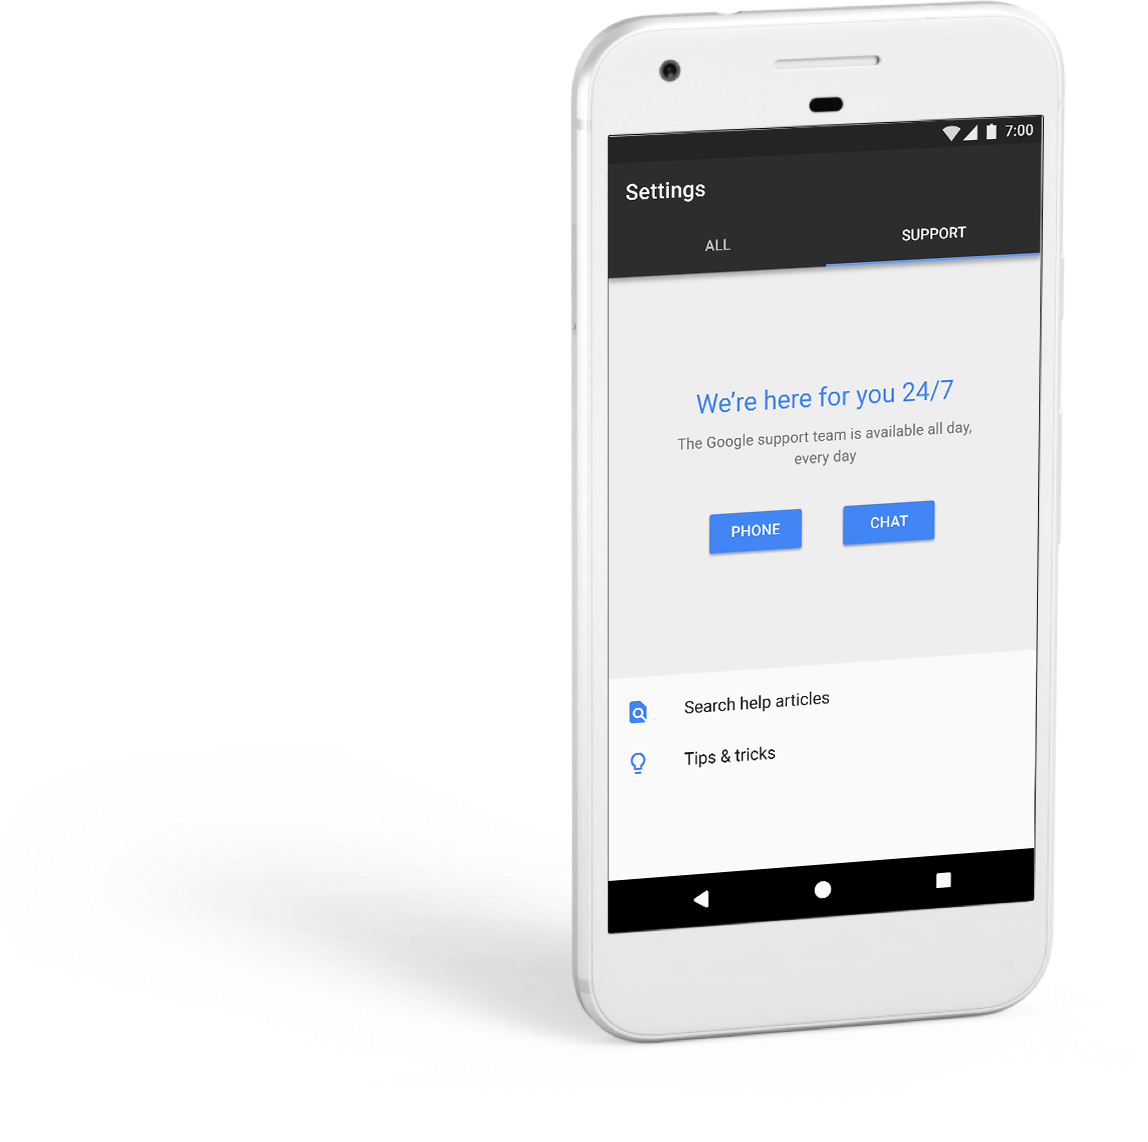 What Does the New Google Pixel Phone Line Offer Small Business Users? 24/7 Support